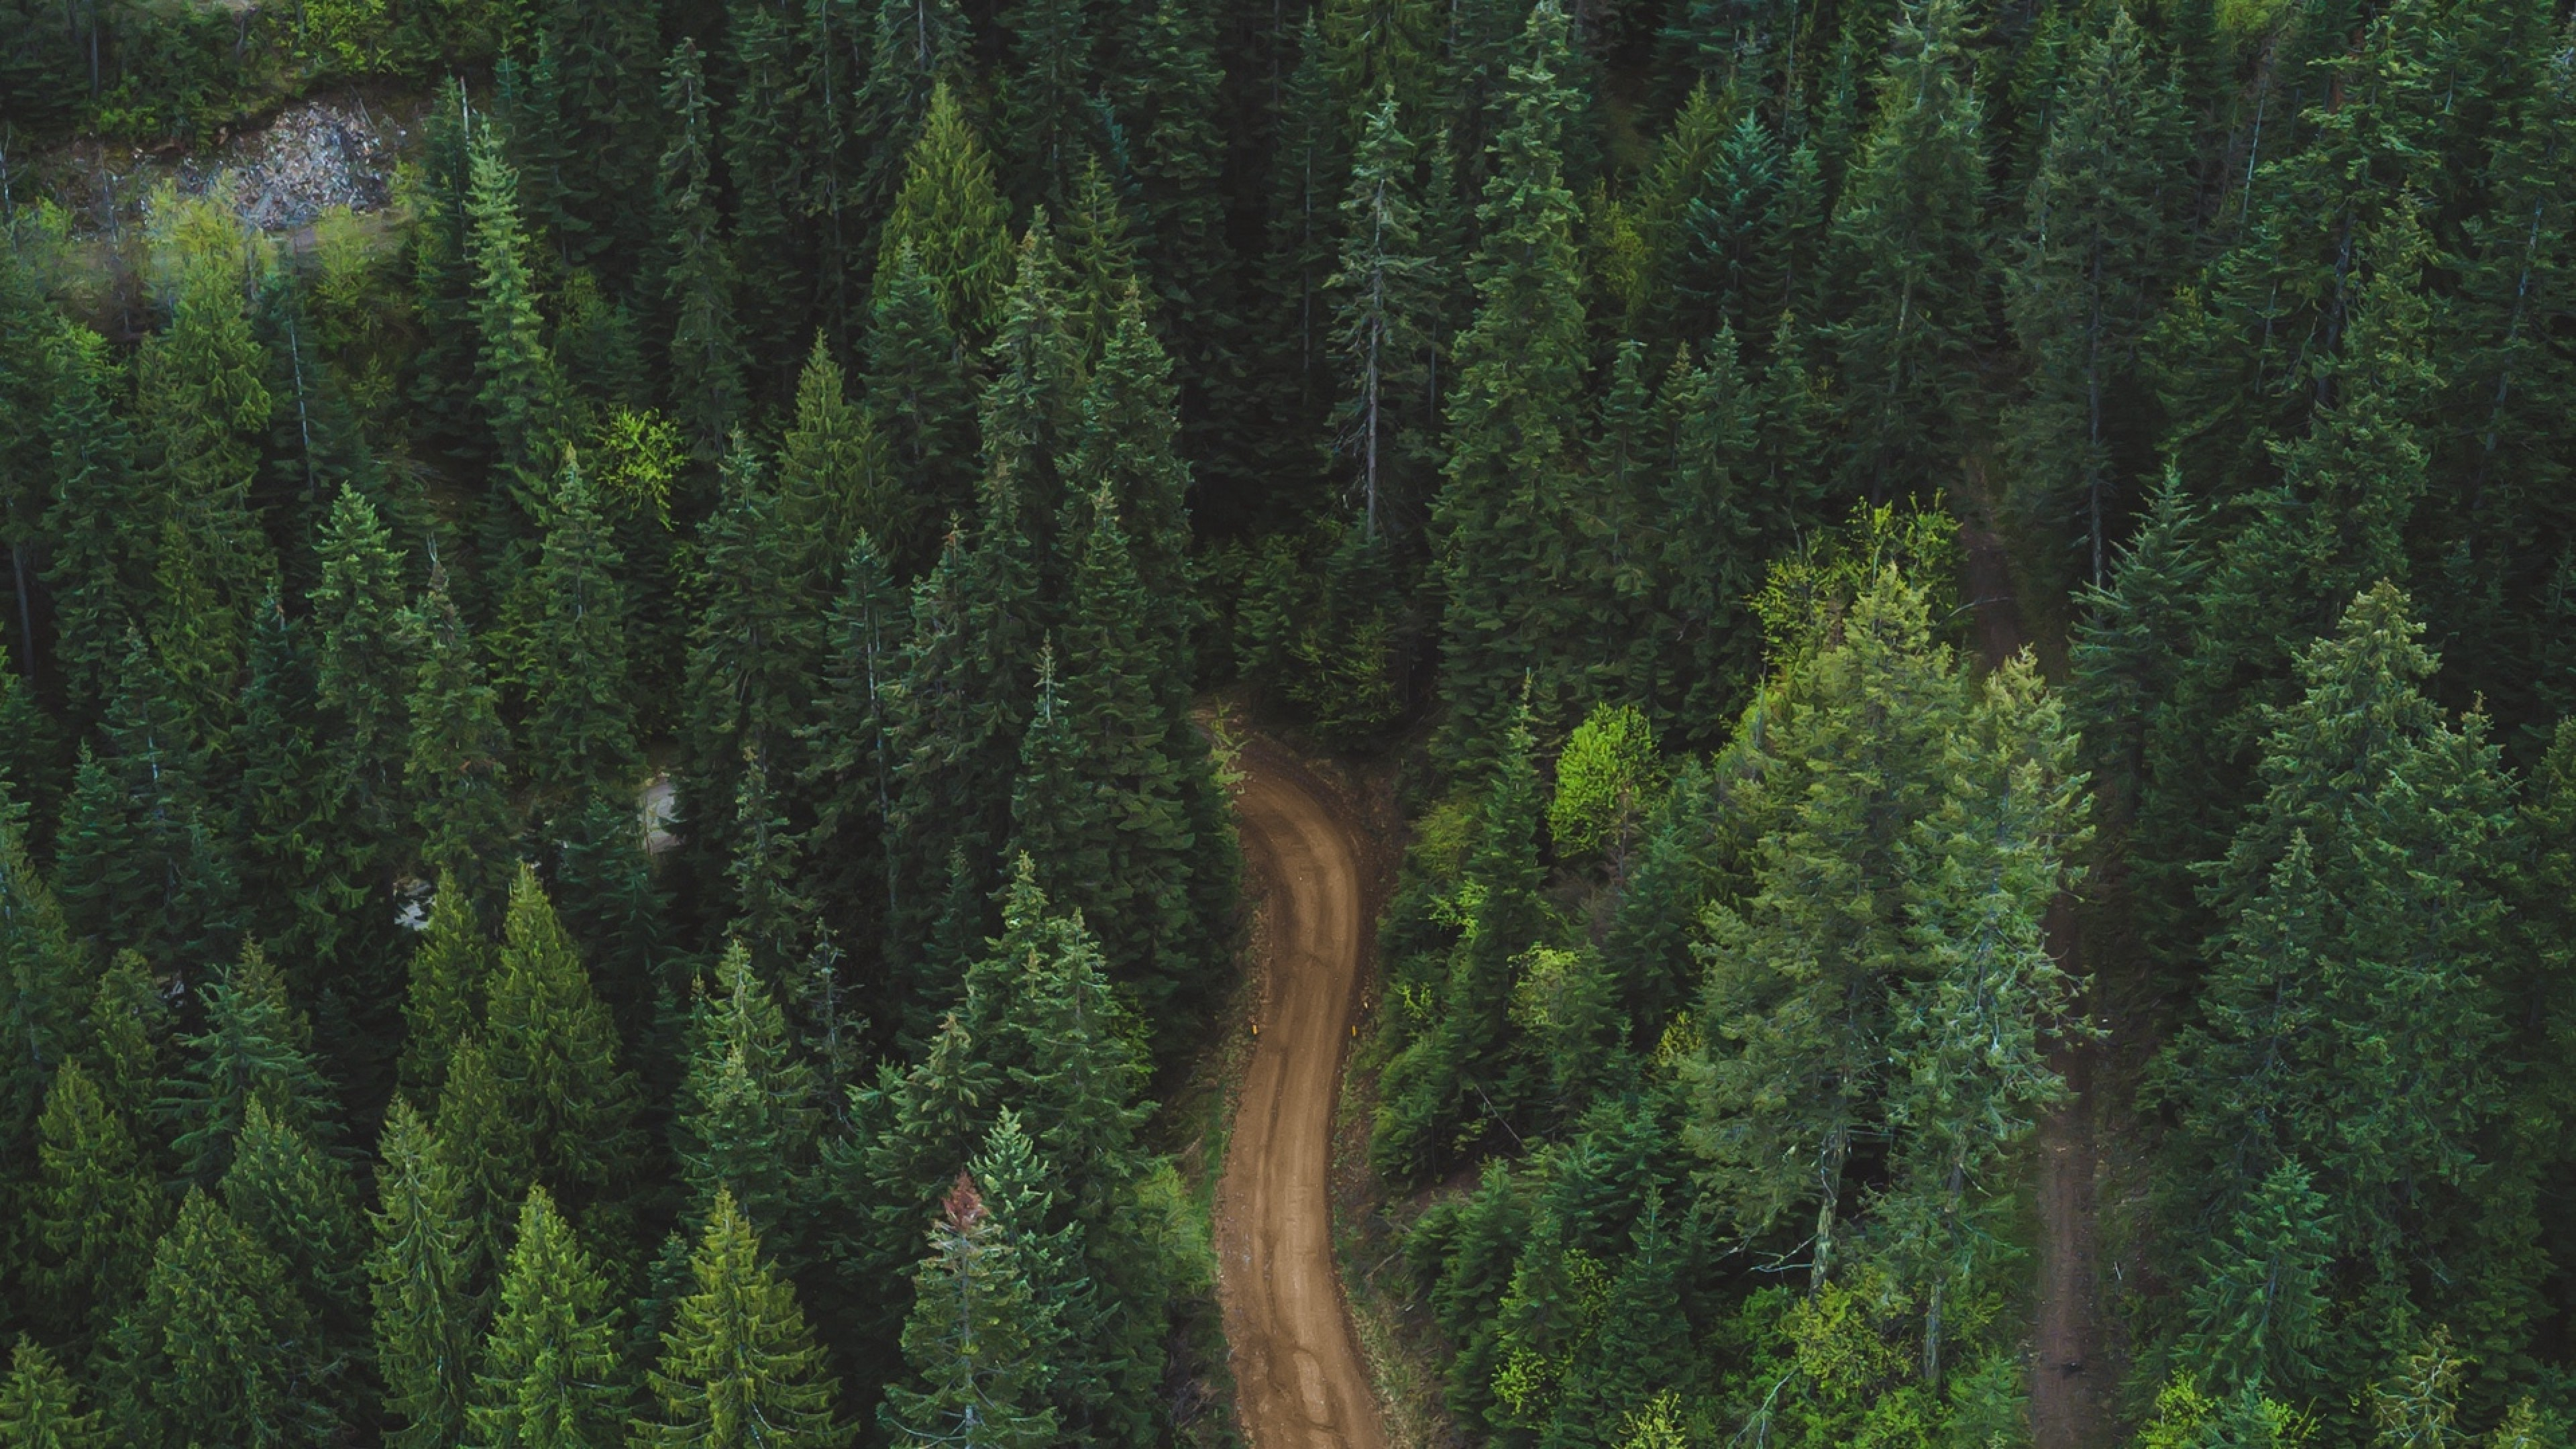 Aerial View Of A Road Inside The Forest Hd Wallpaper 4k Ultra Hd Hd Wallpaper Wallpapers Net